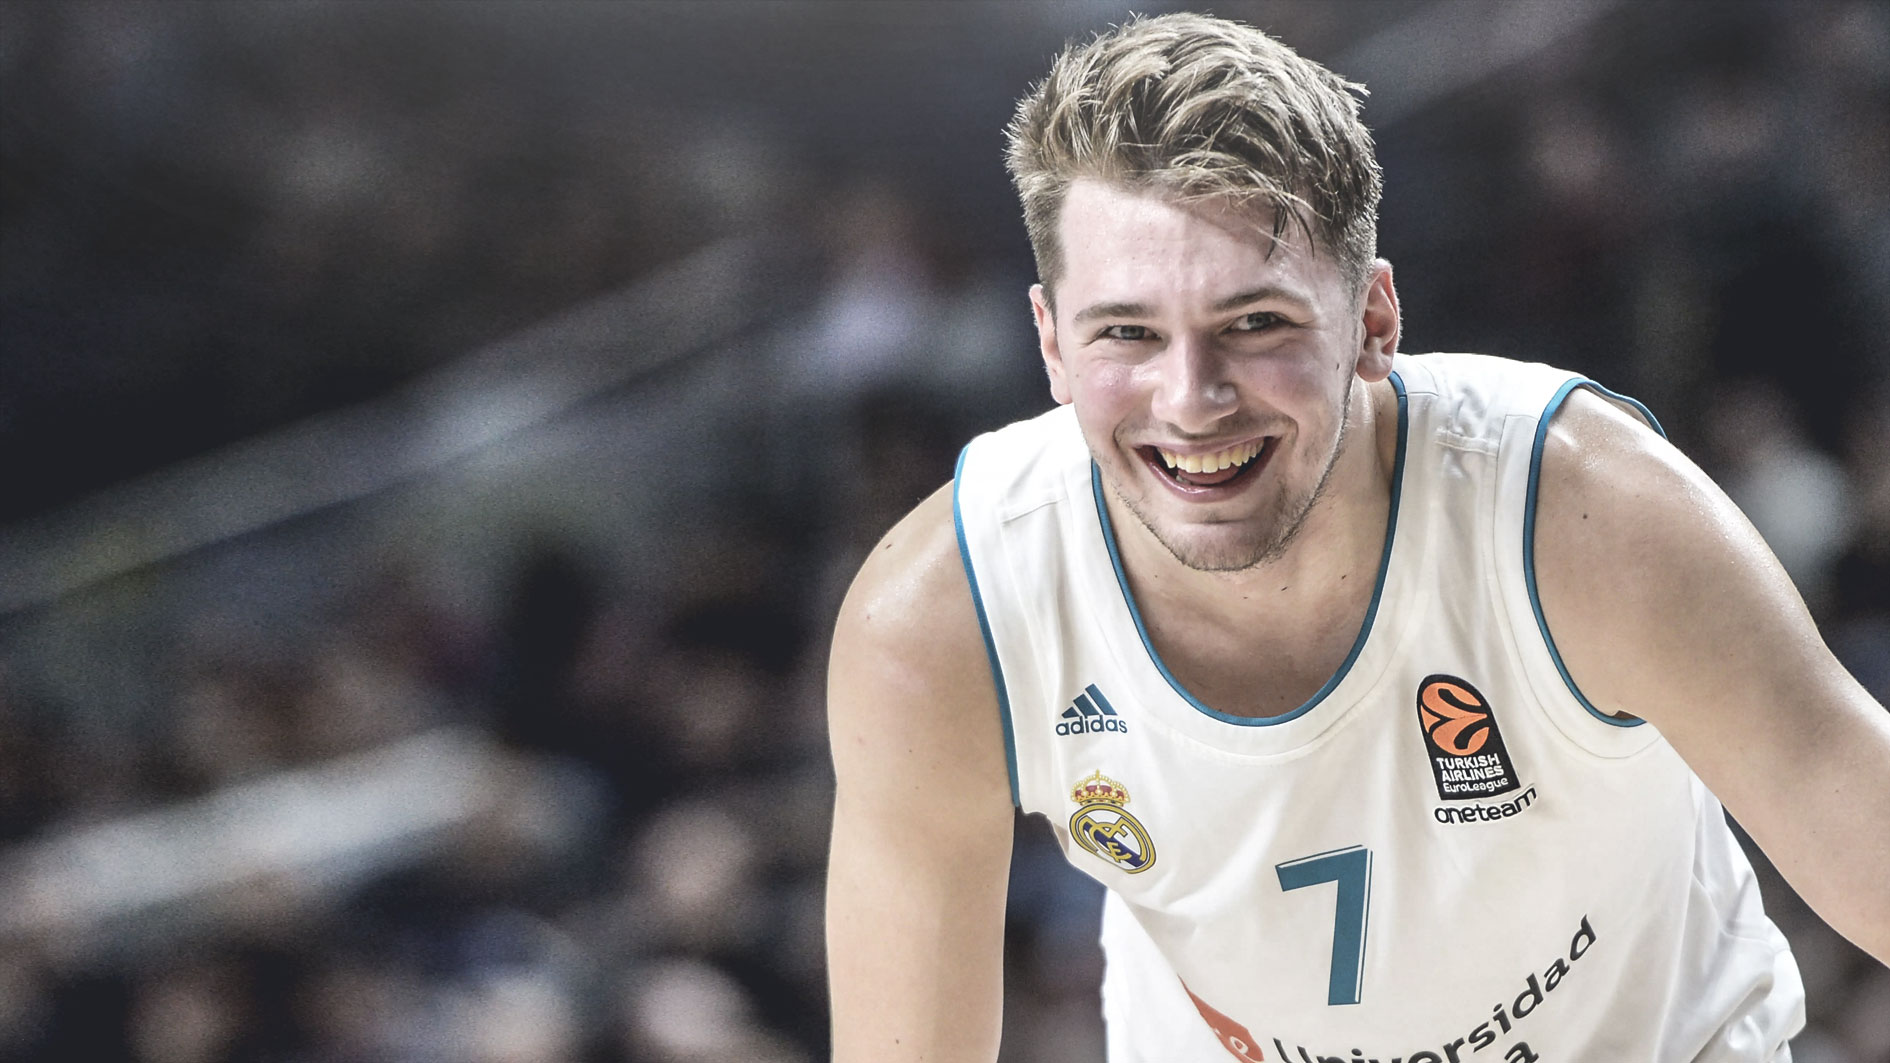 The Dallas Mavericks announced on Monday they have signed top draft pick Luka Doncic The 19yearold guard from Slovenia will earn 5467200 in 201819